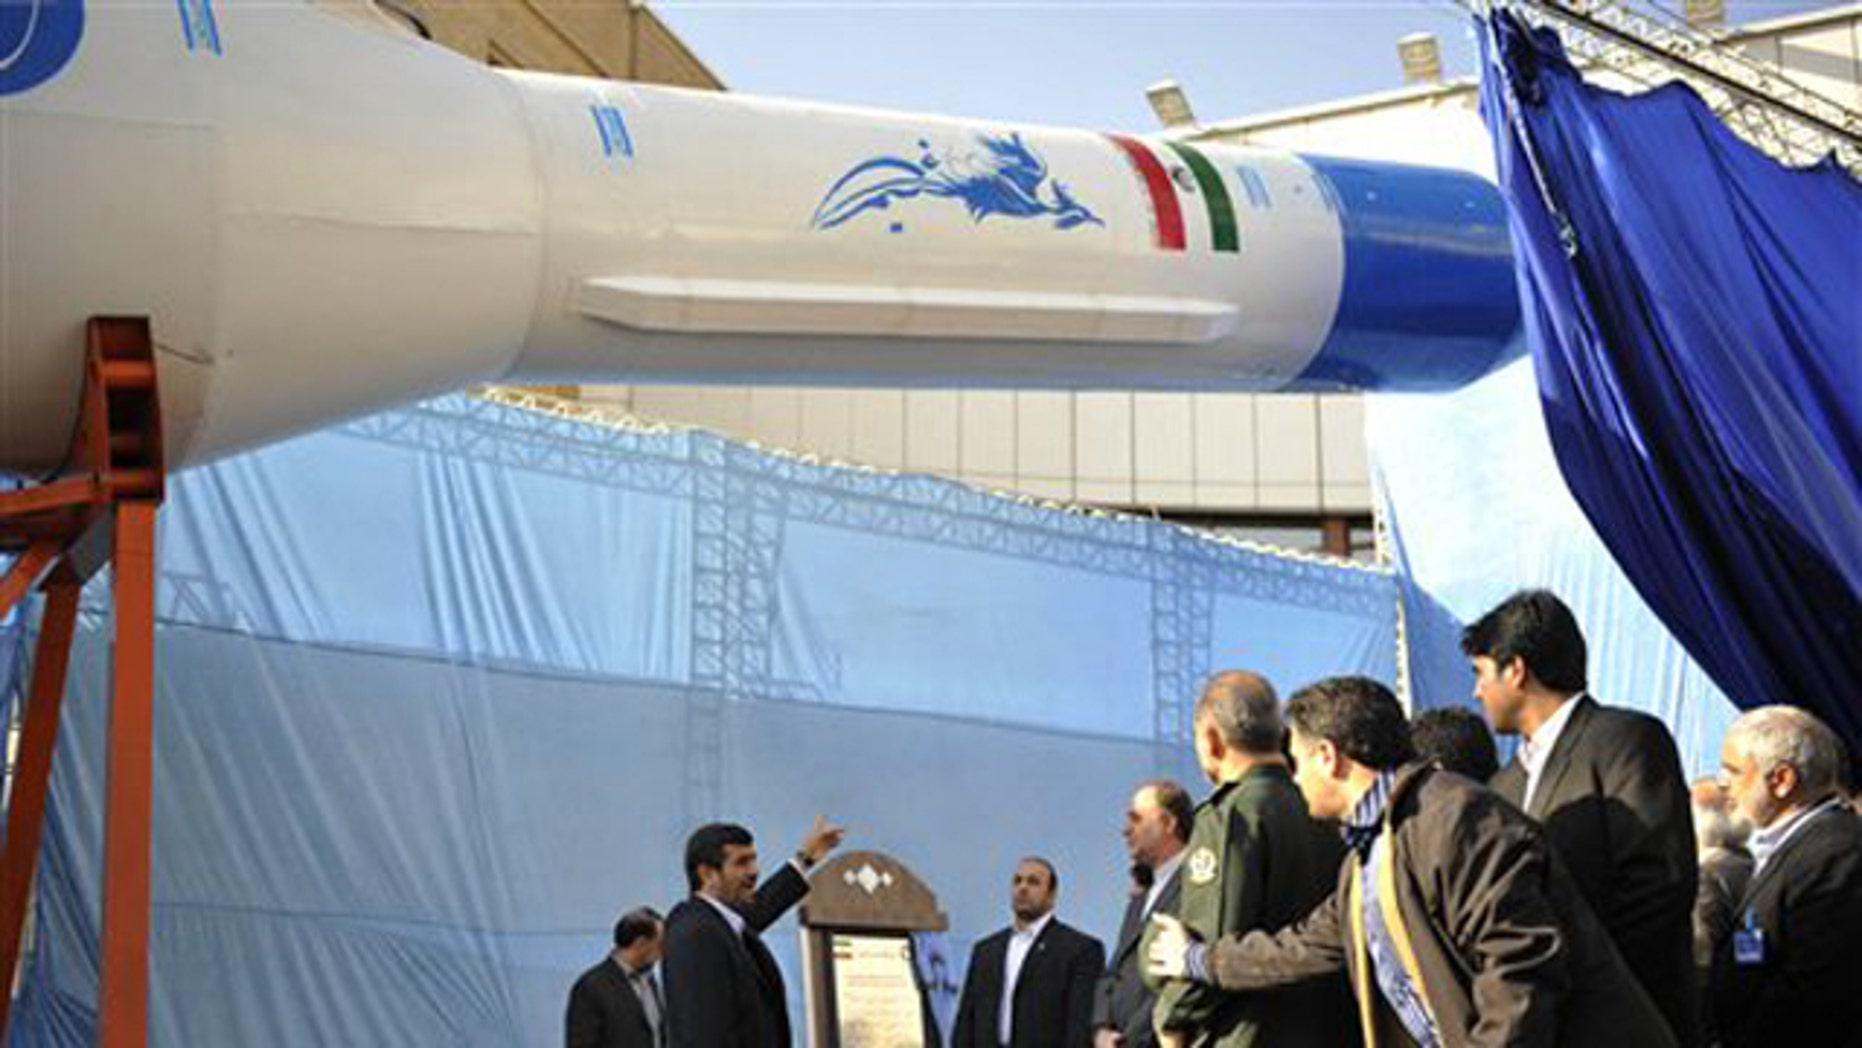 Feb. 3: Iranian President Mahmoud Ahmadinejad, center, gestures towards a model of Iran's domestically-built light booster rocket, named Simorgh -- part of an ambitious space program that has worried Western powers because they fear the same technology used to launch satellites could also deliver warheads.